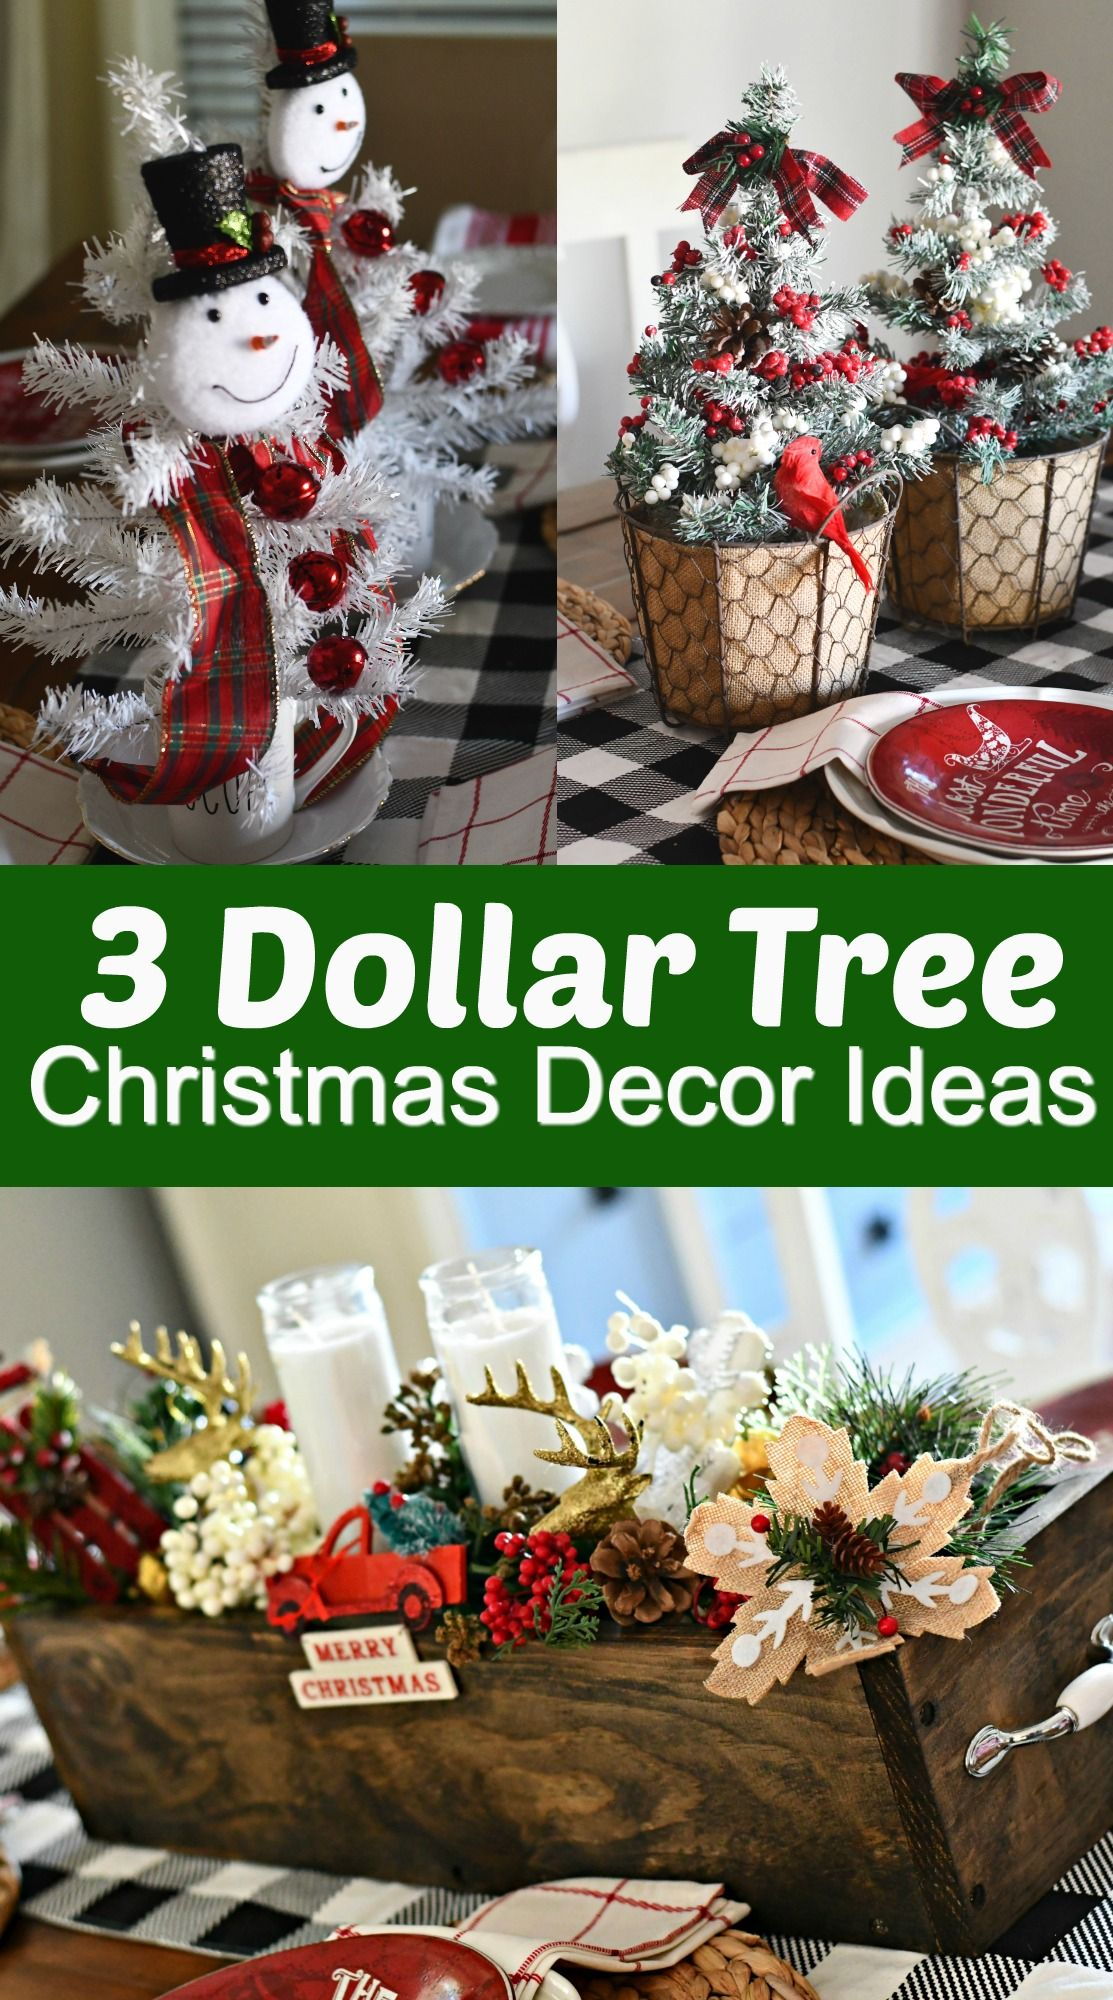 3 Simple & Fun DIY Dollar Tree Christmas Centerpieces #dollarstores